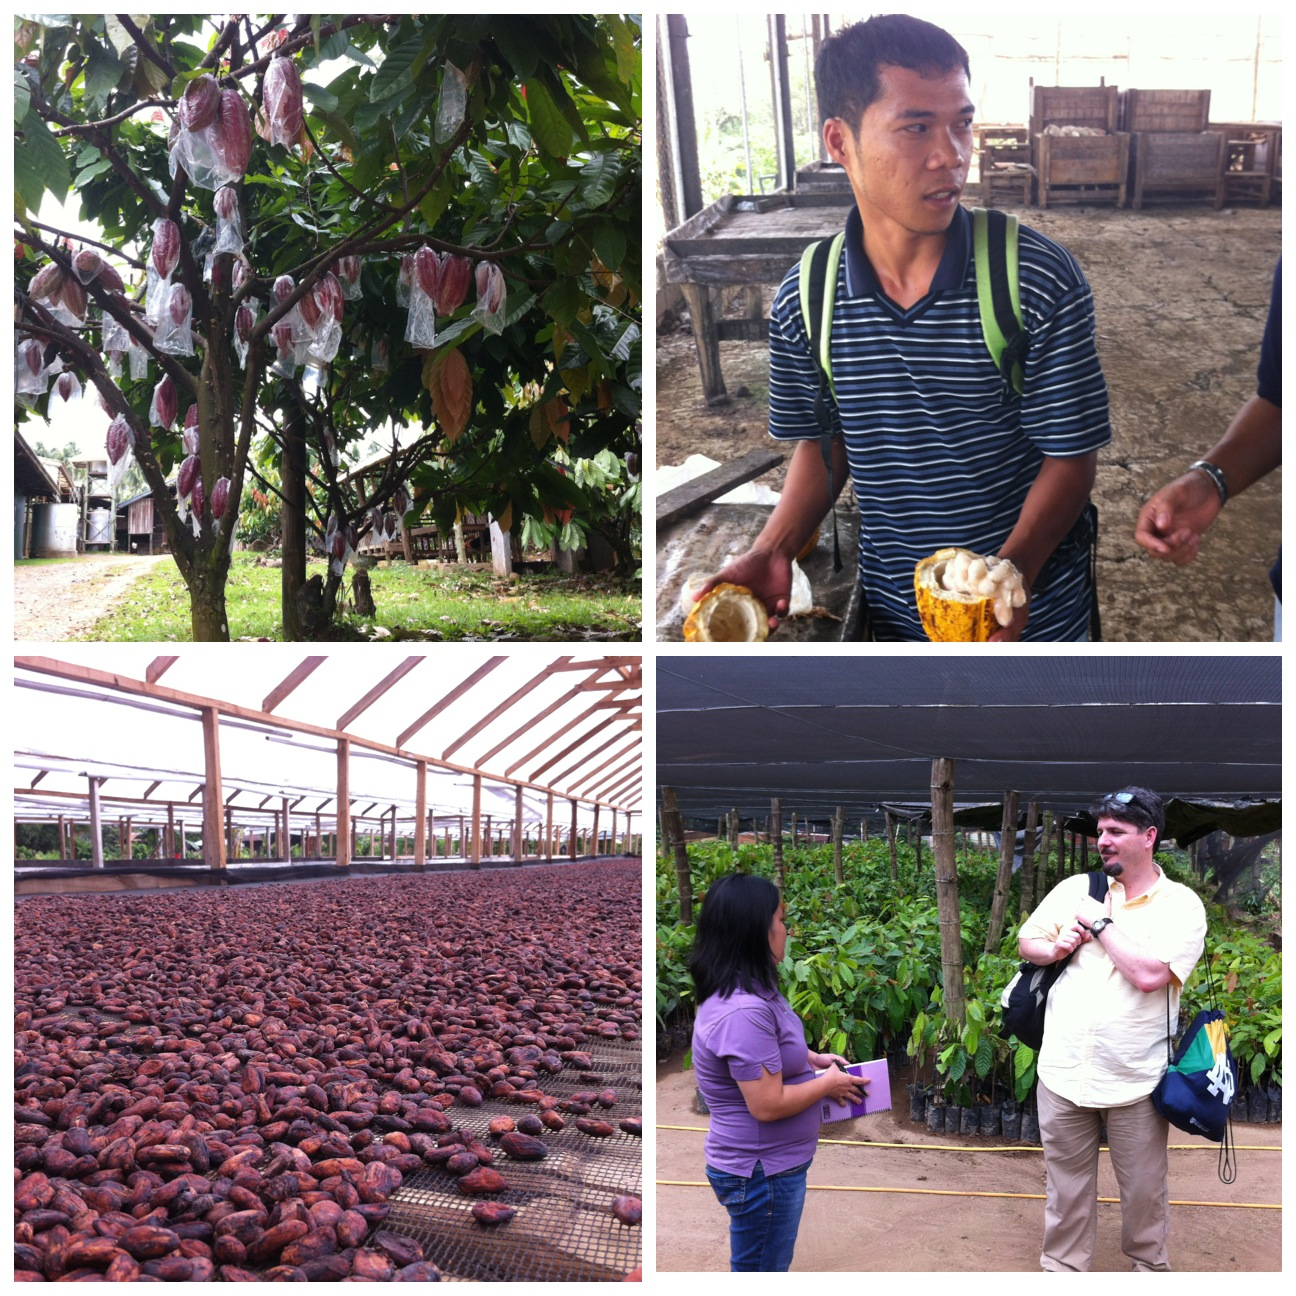 Clockwise from upper left: Cacao pods are covered in plastic to repel insects, a cacao technician shows us the wet beans inside a cacao pod, cacao solar-drying beds, Mike Kinsella (MBA) speaks with a rep. from Kennemer Foods in front of cacao seedlings.